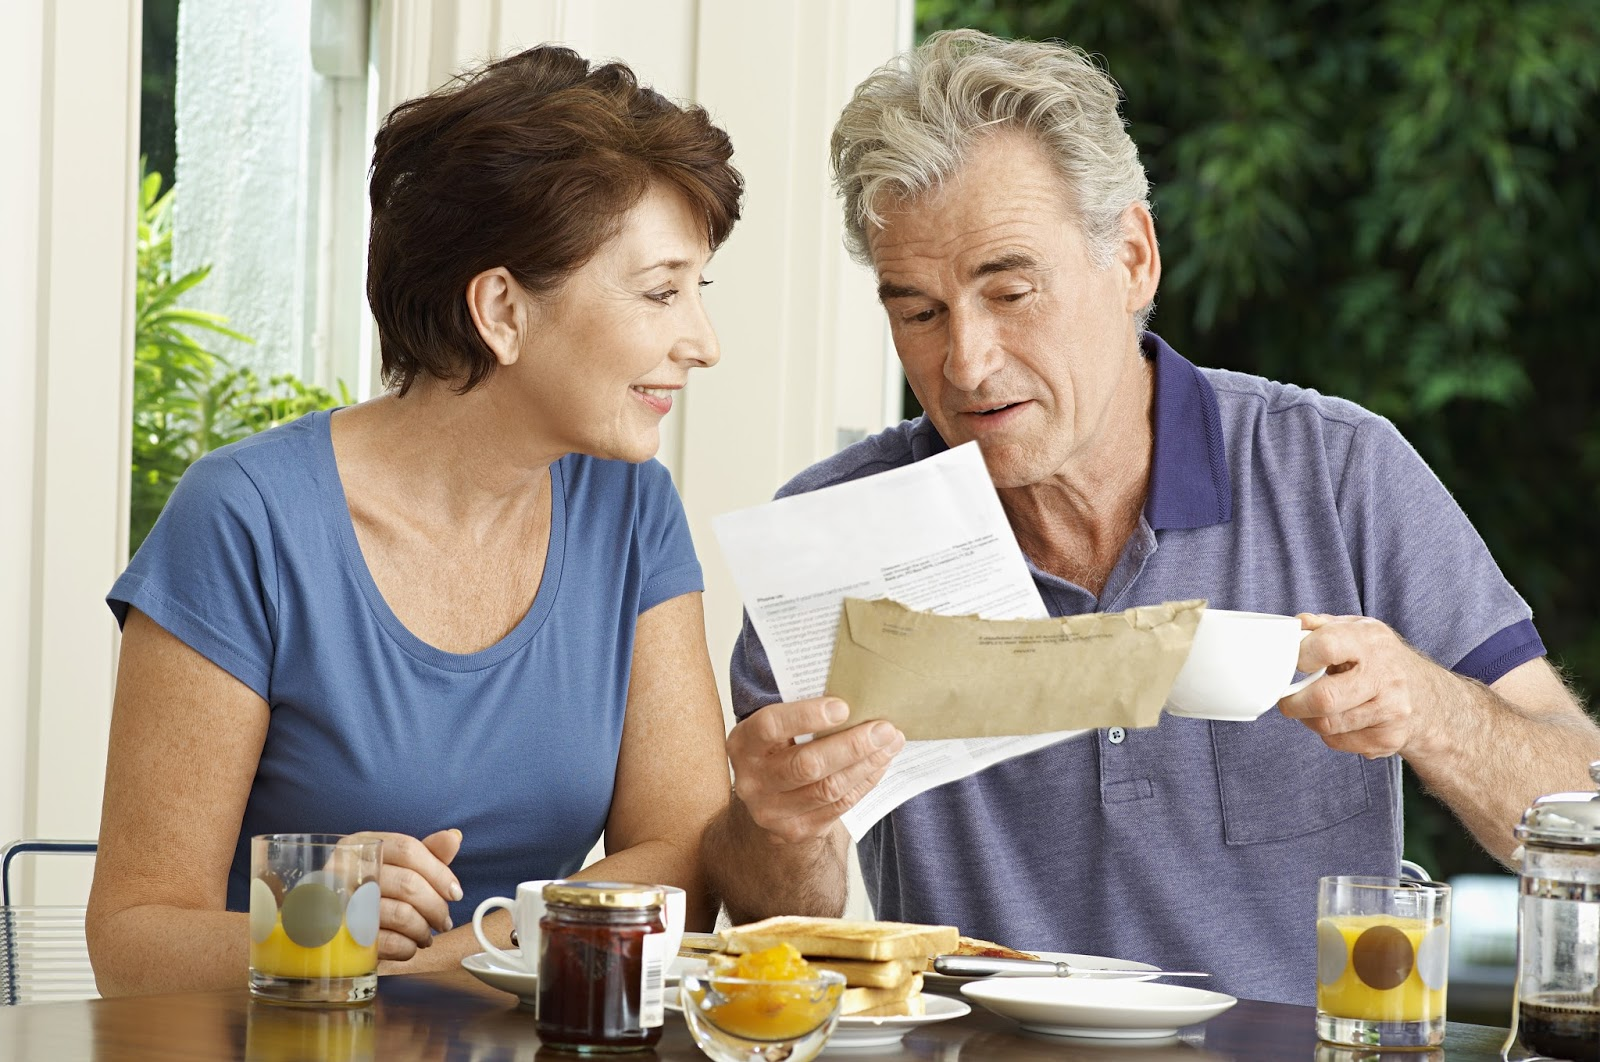 Older man & woman discussing something over breakfast